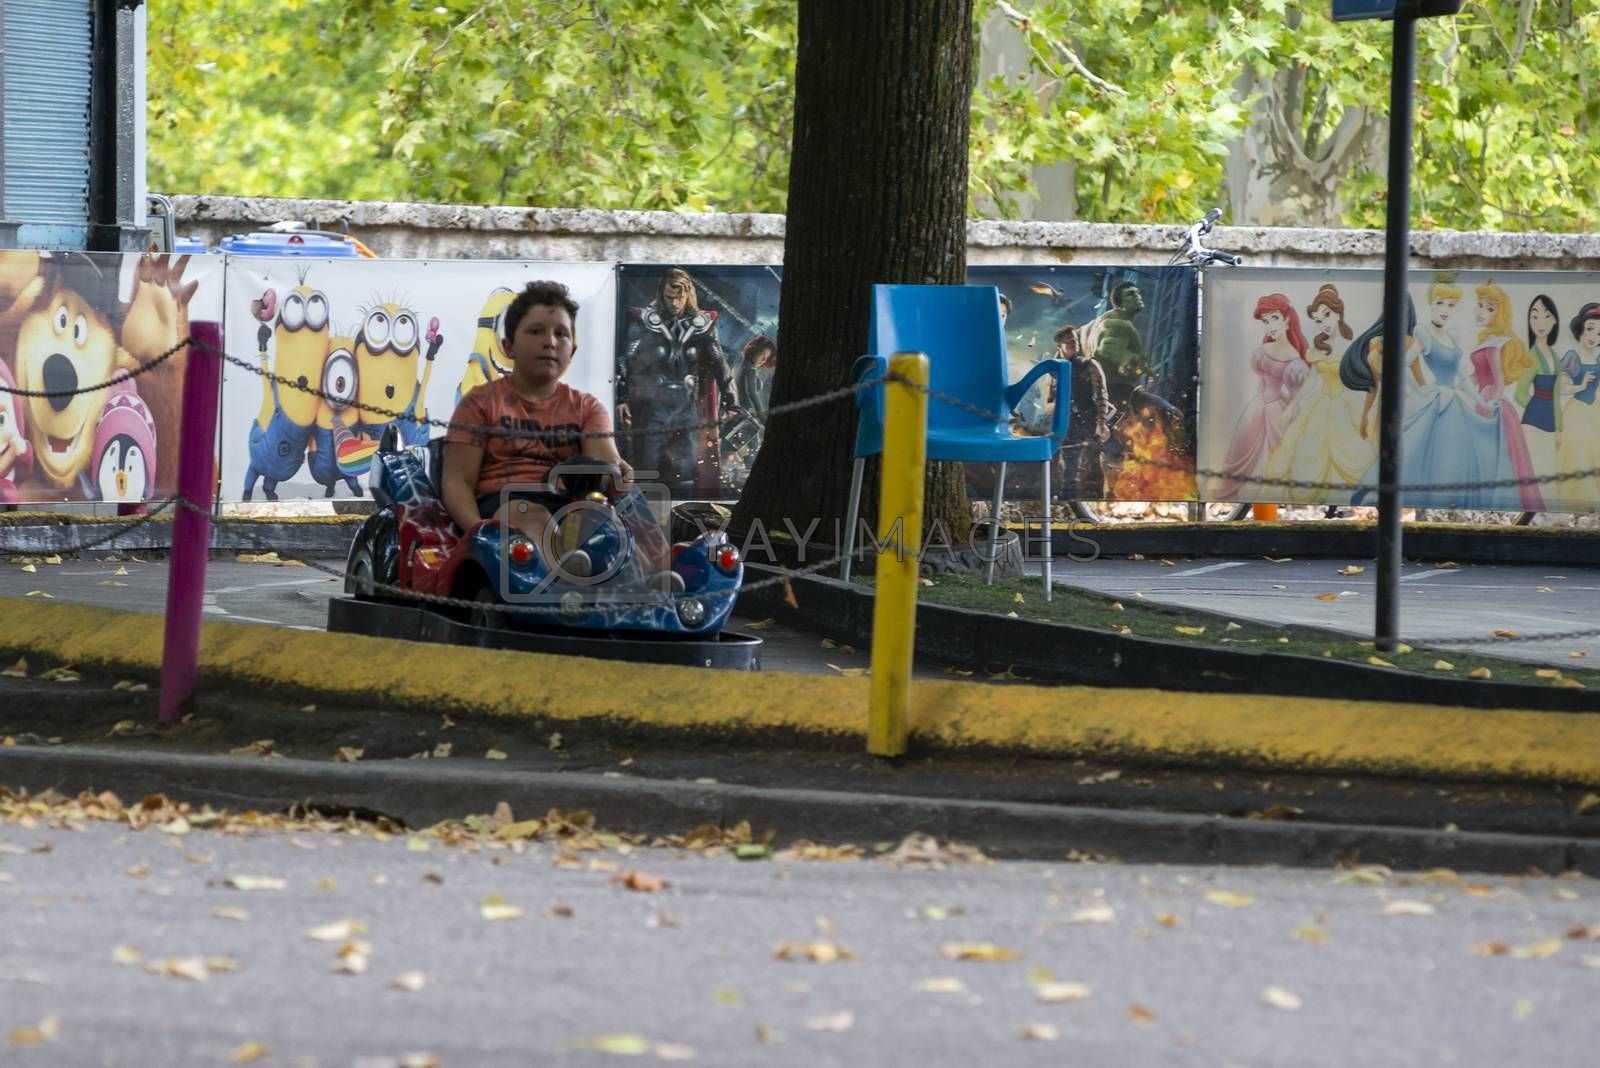 terni,italy august 16 2020:child at the park going on the electric car track